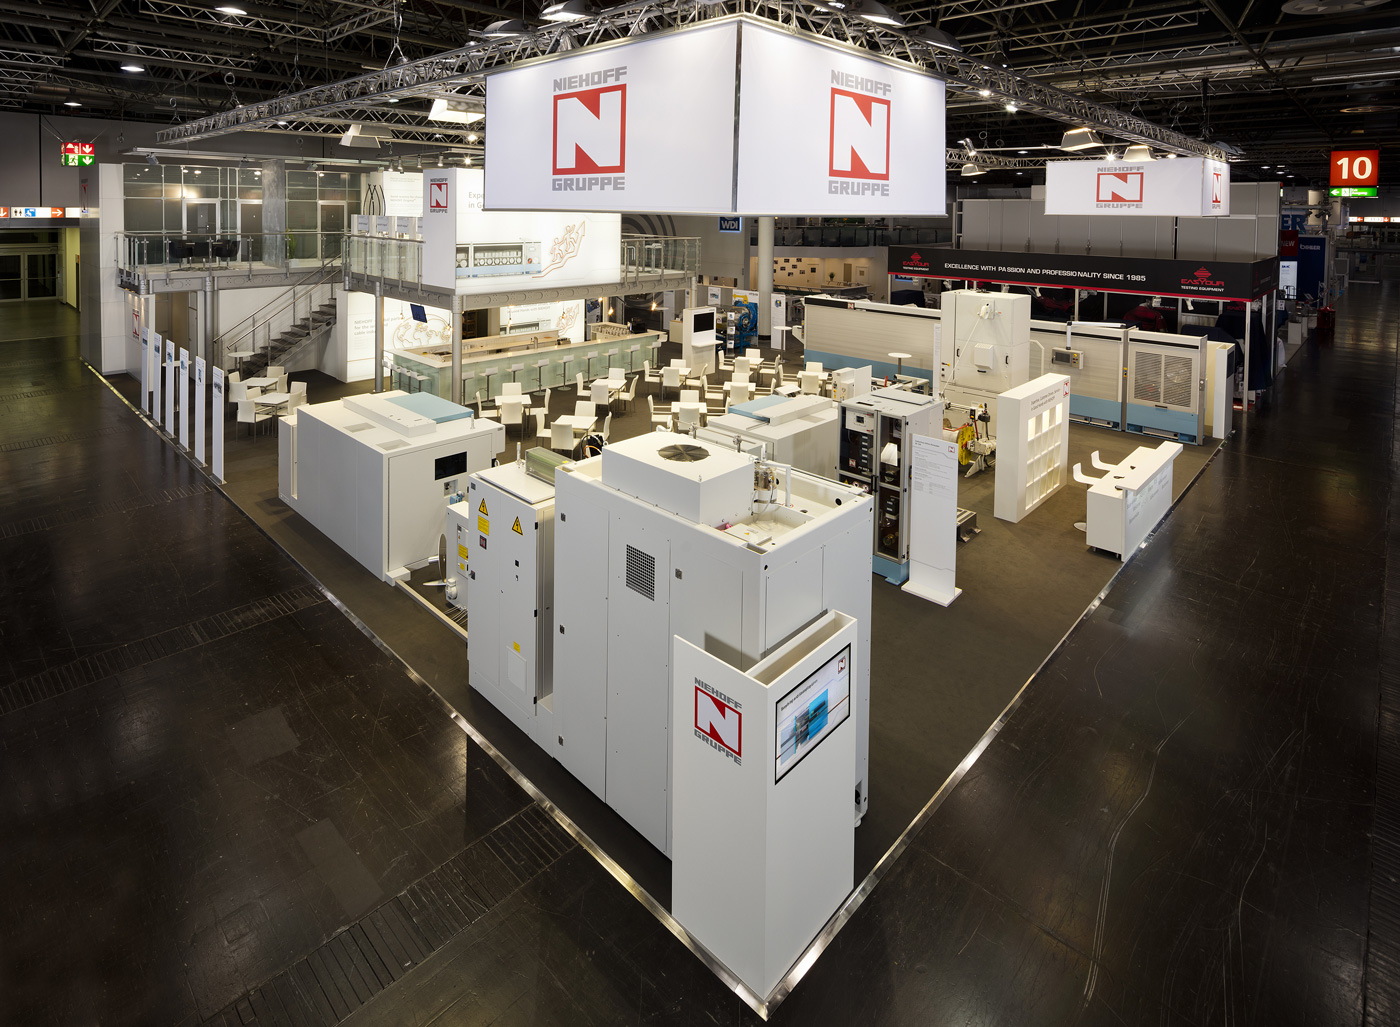 Maschinenfabrik Niehoff, one of the leading manufacturers of machinery engineered for the wire and cable industry, will be exhibiting at the wire 2018